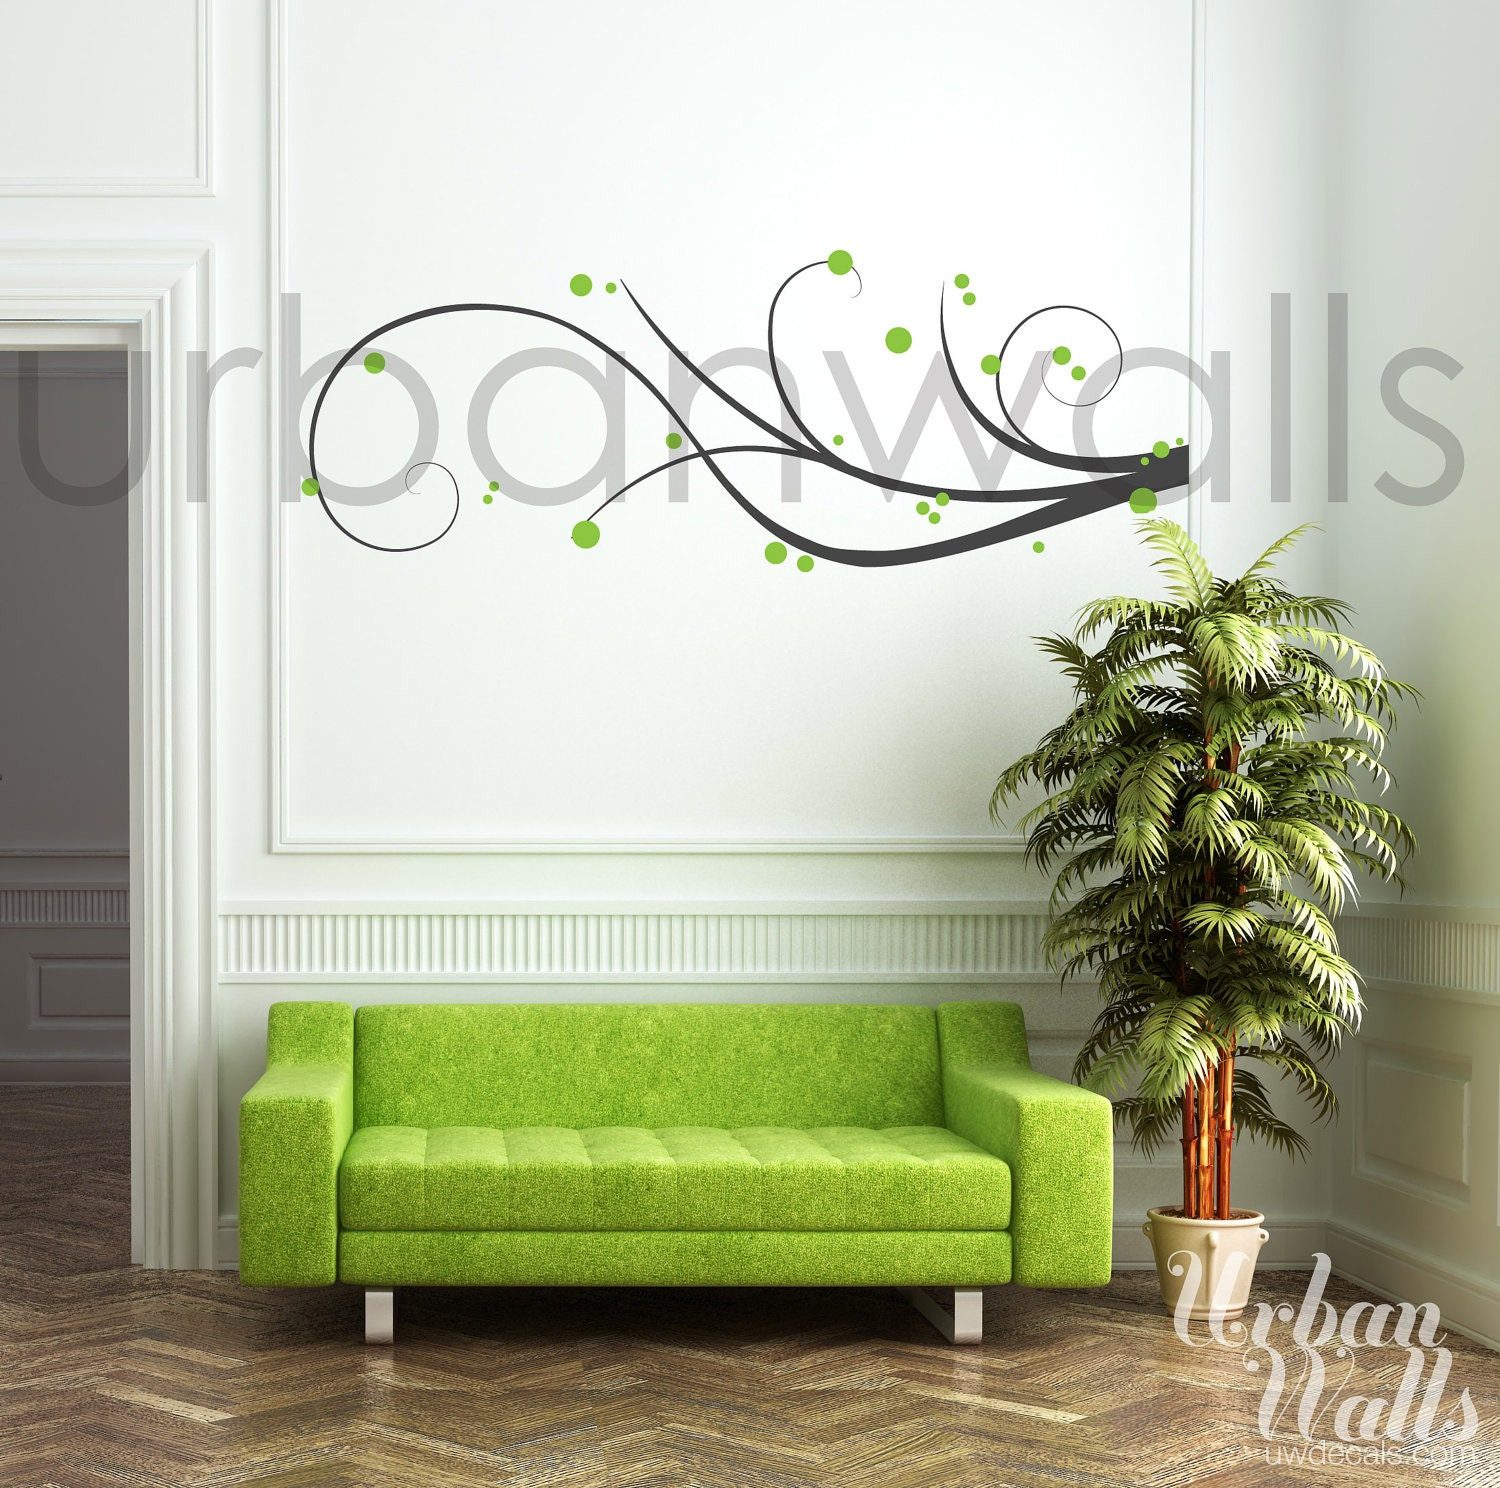 Vinyl wall sticker decal art swirl away for Adhesive wall decoration